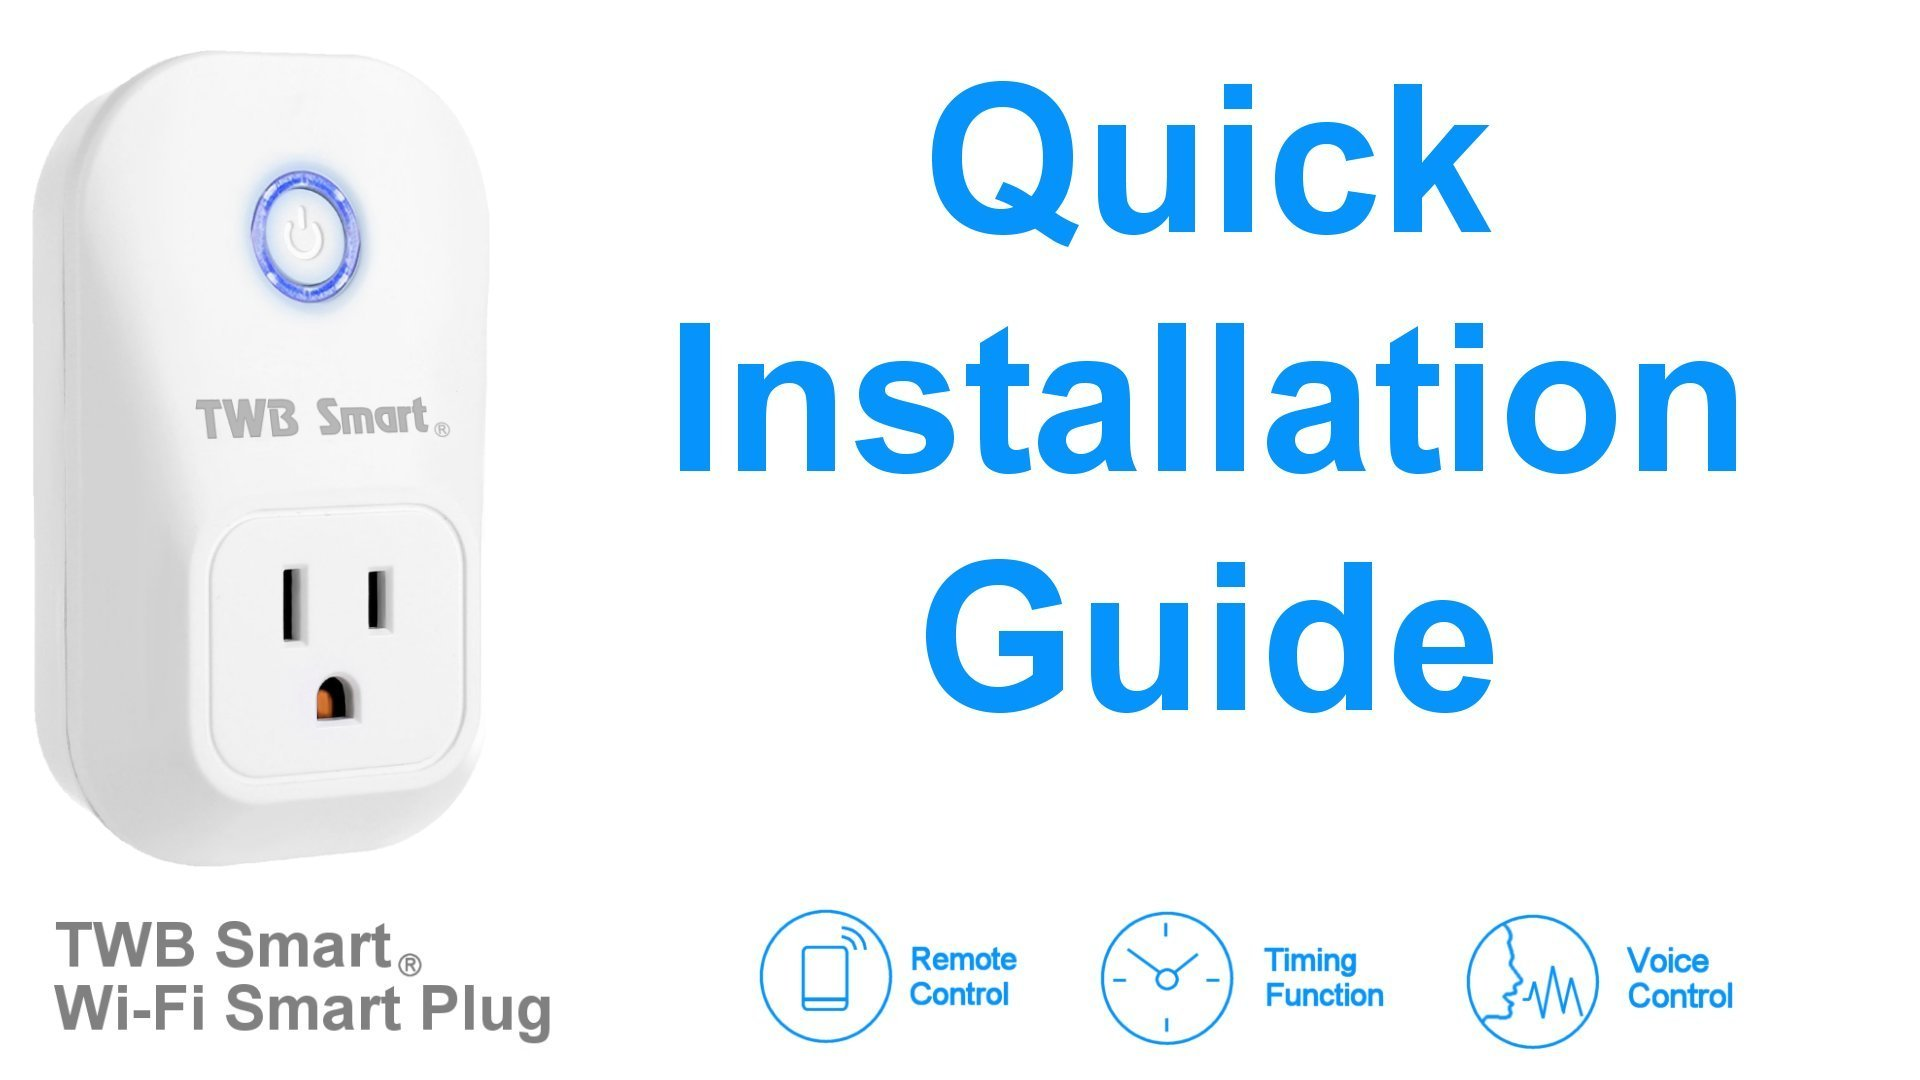 TWB Smart Wi-Fi Smart Plug, Compatible with Alexa and Works with Google Home. Smart Home Electrical Outlet Timer Compatible with Amazon Echo Dot Accessories. For Home Automation (2-Pack) by TWB Smart (Image #9)